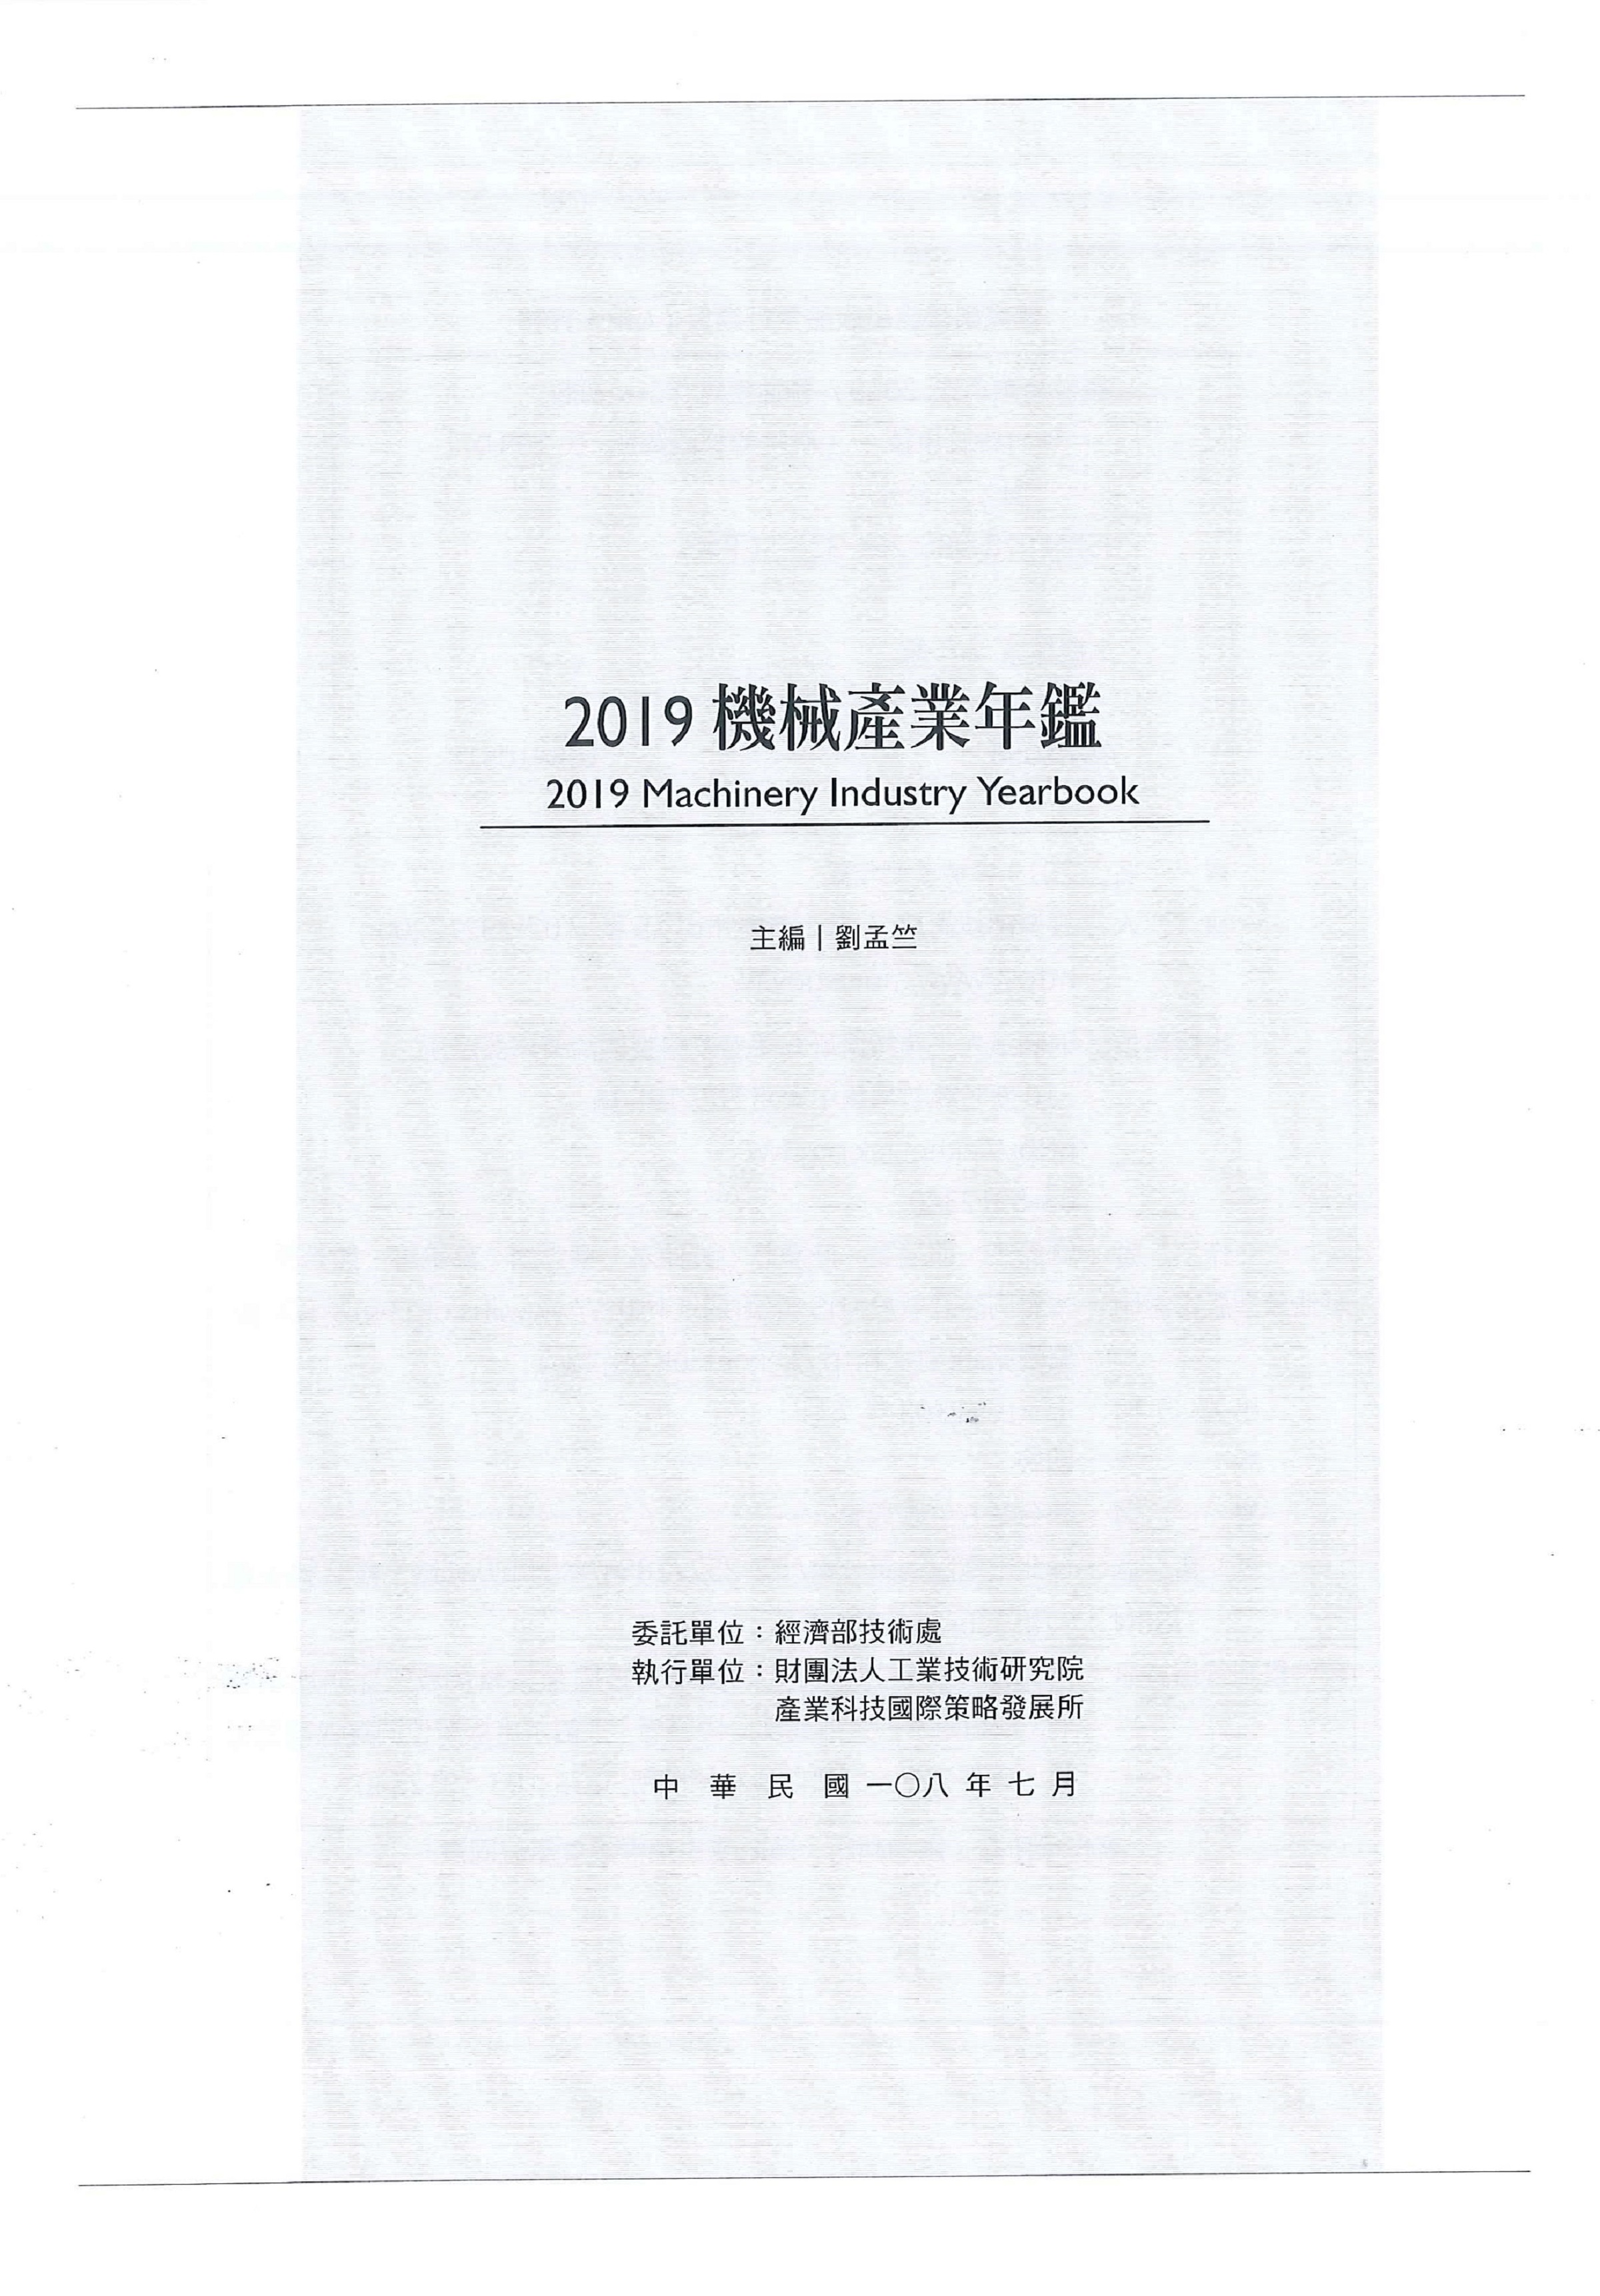 機械產業年鑑=Machinery industry yearbook